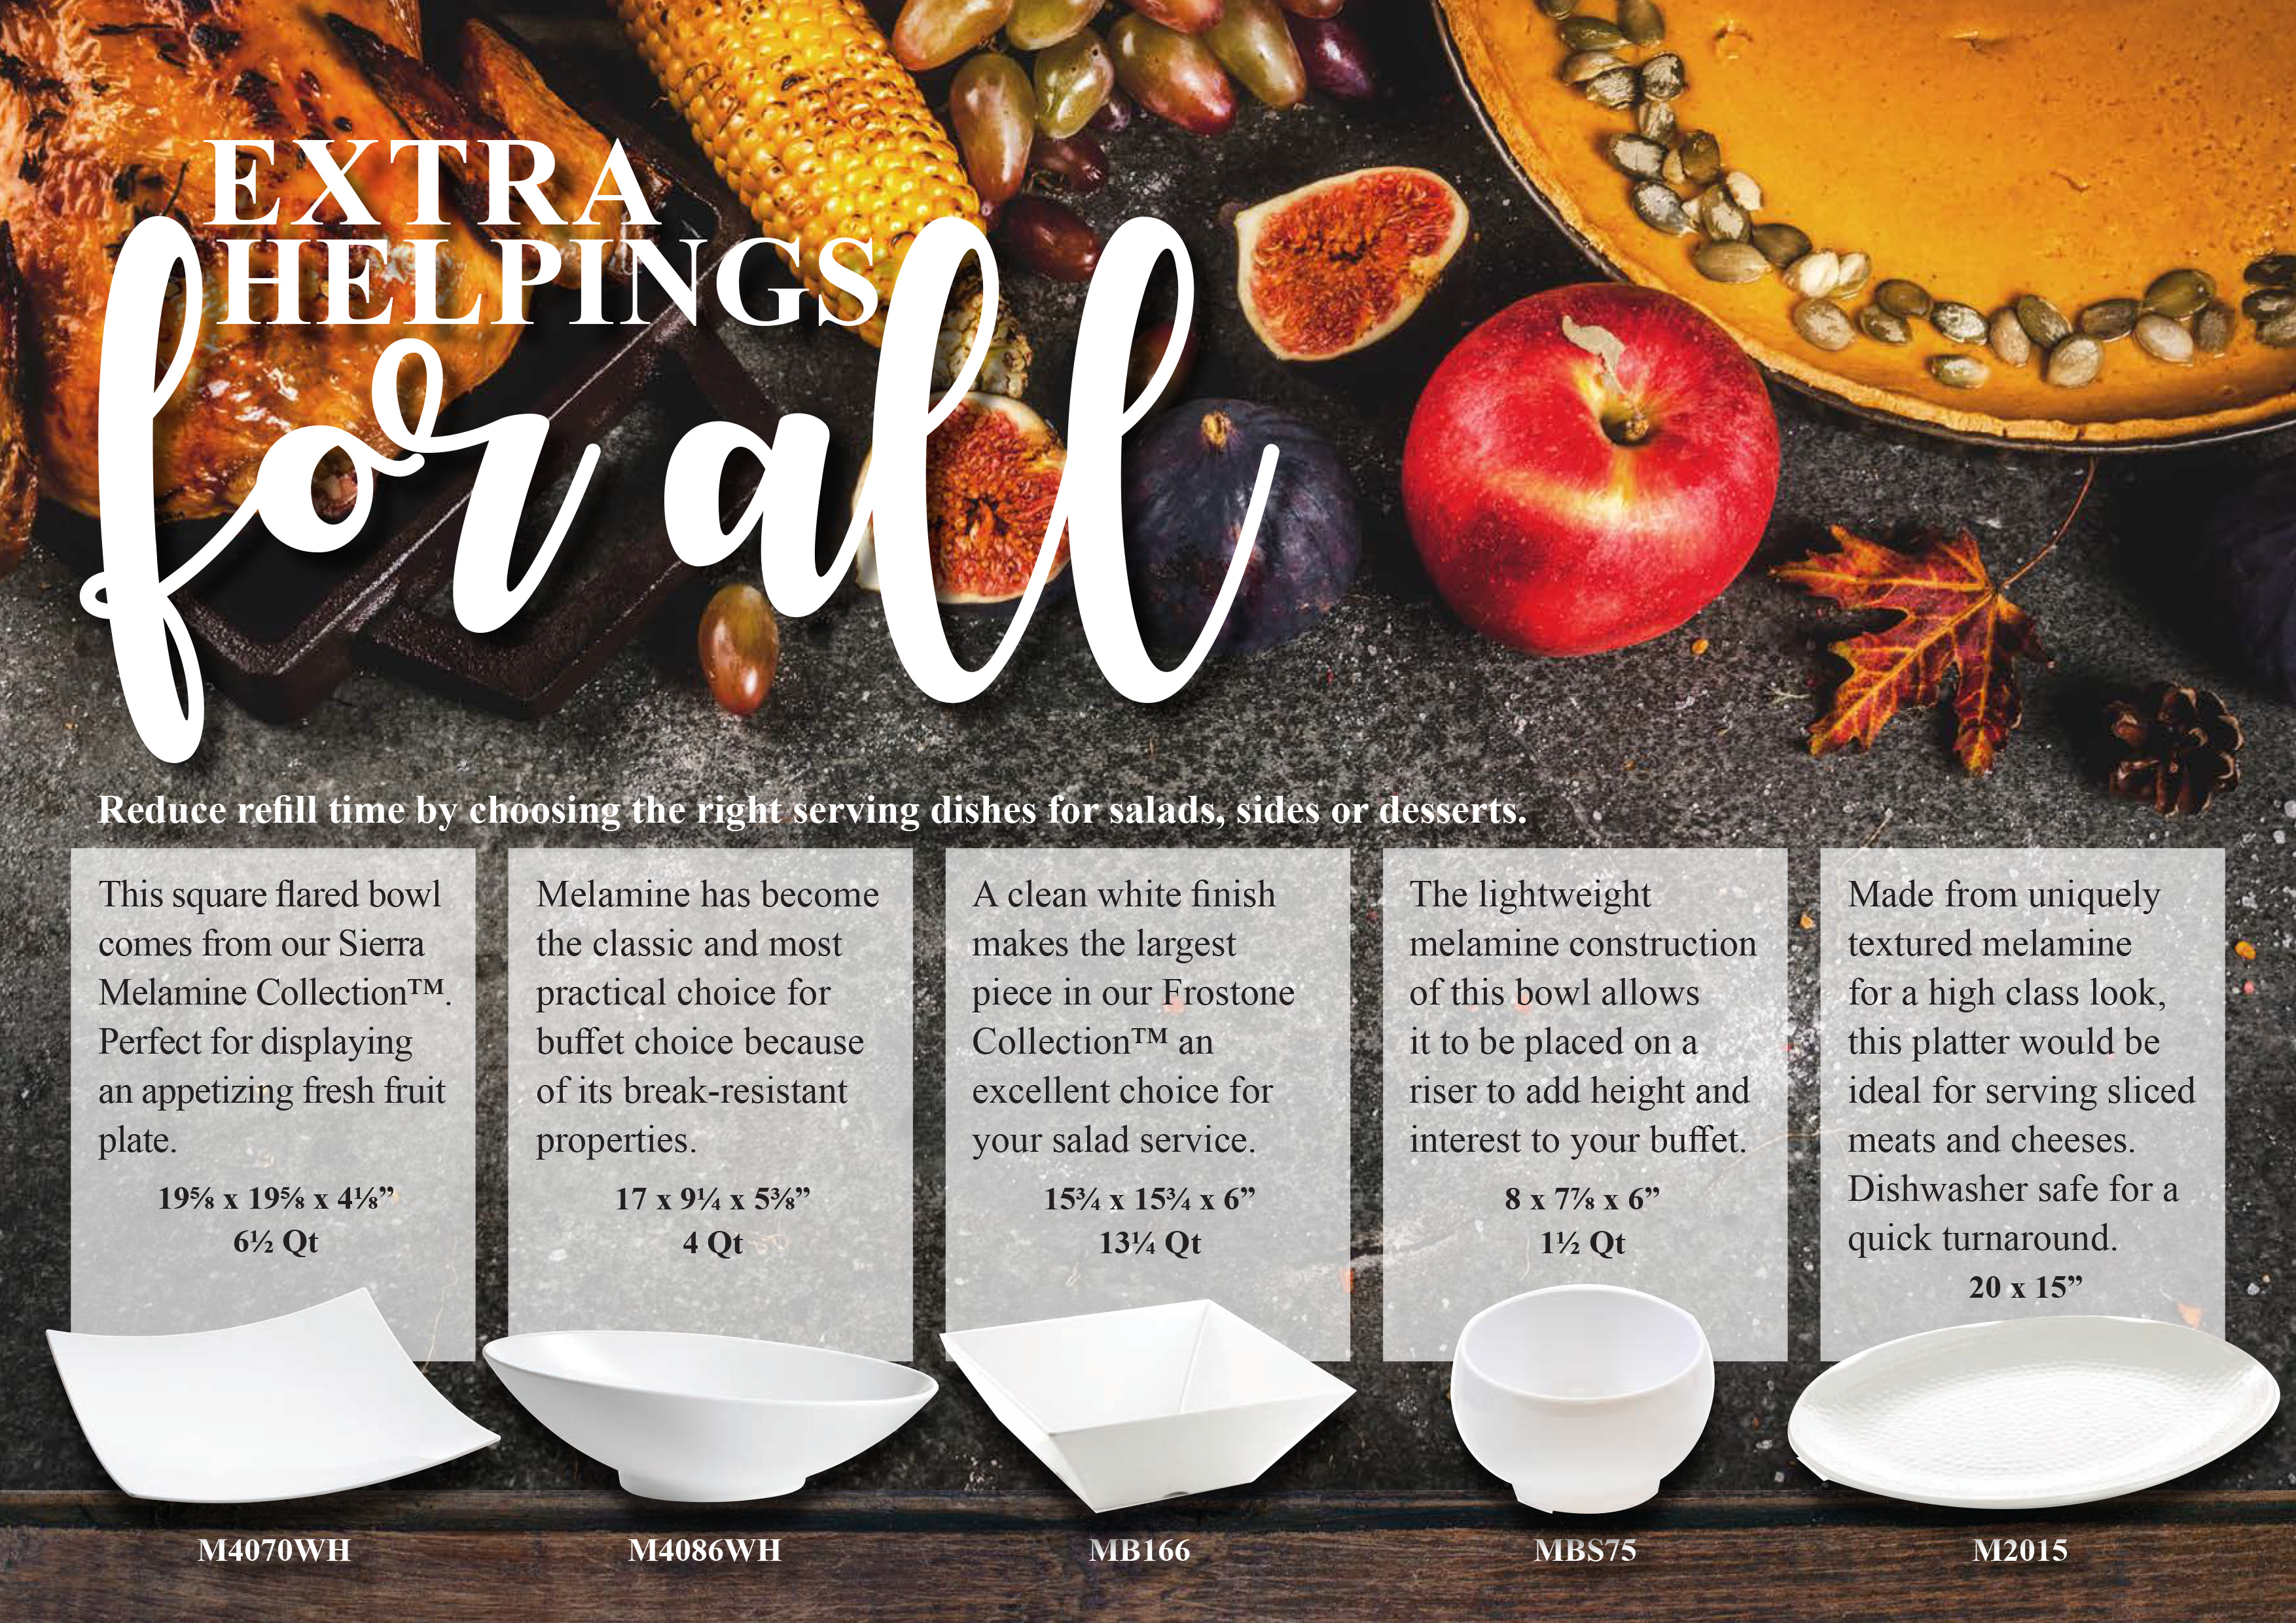 extra helpings for all with these tablecraft products